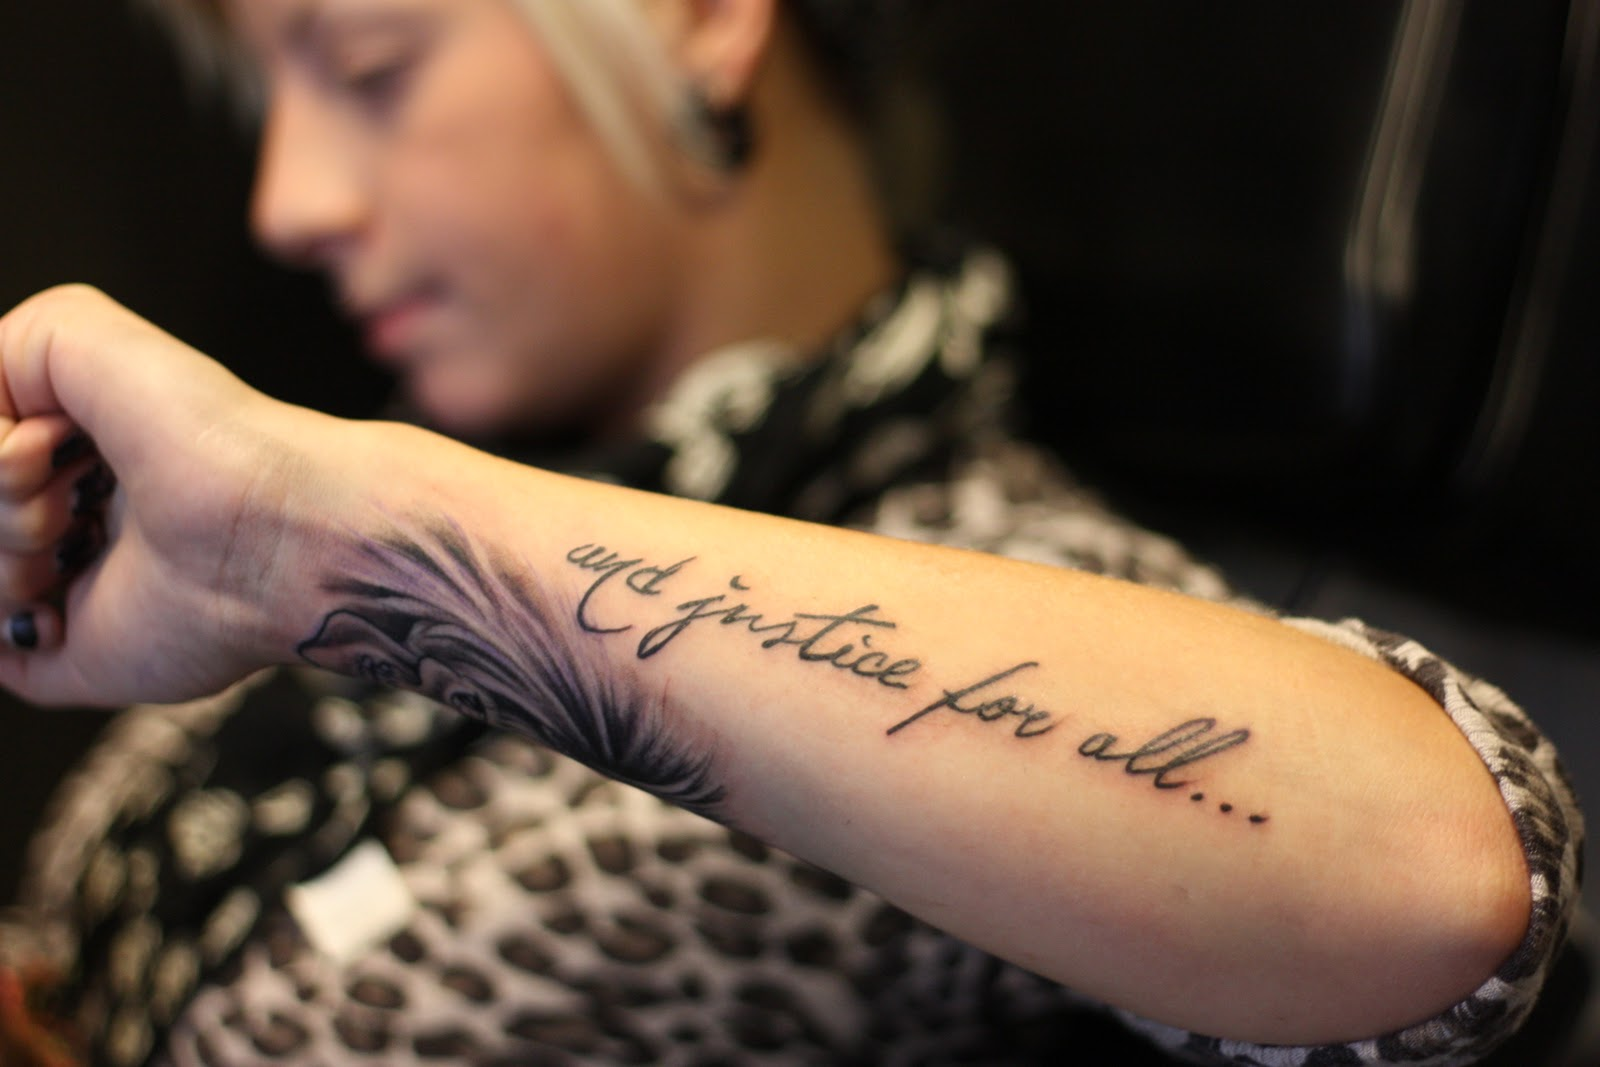 Little Bird Tattoo And Justice For All